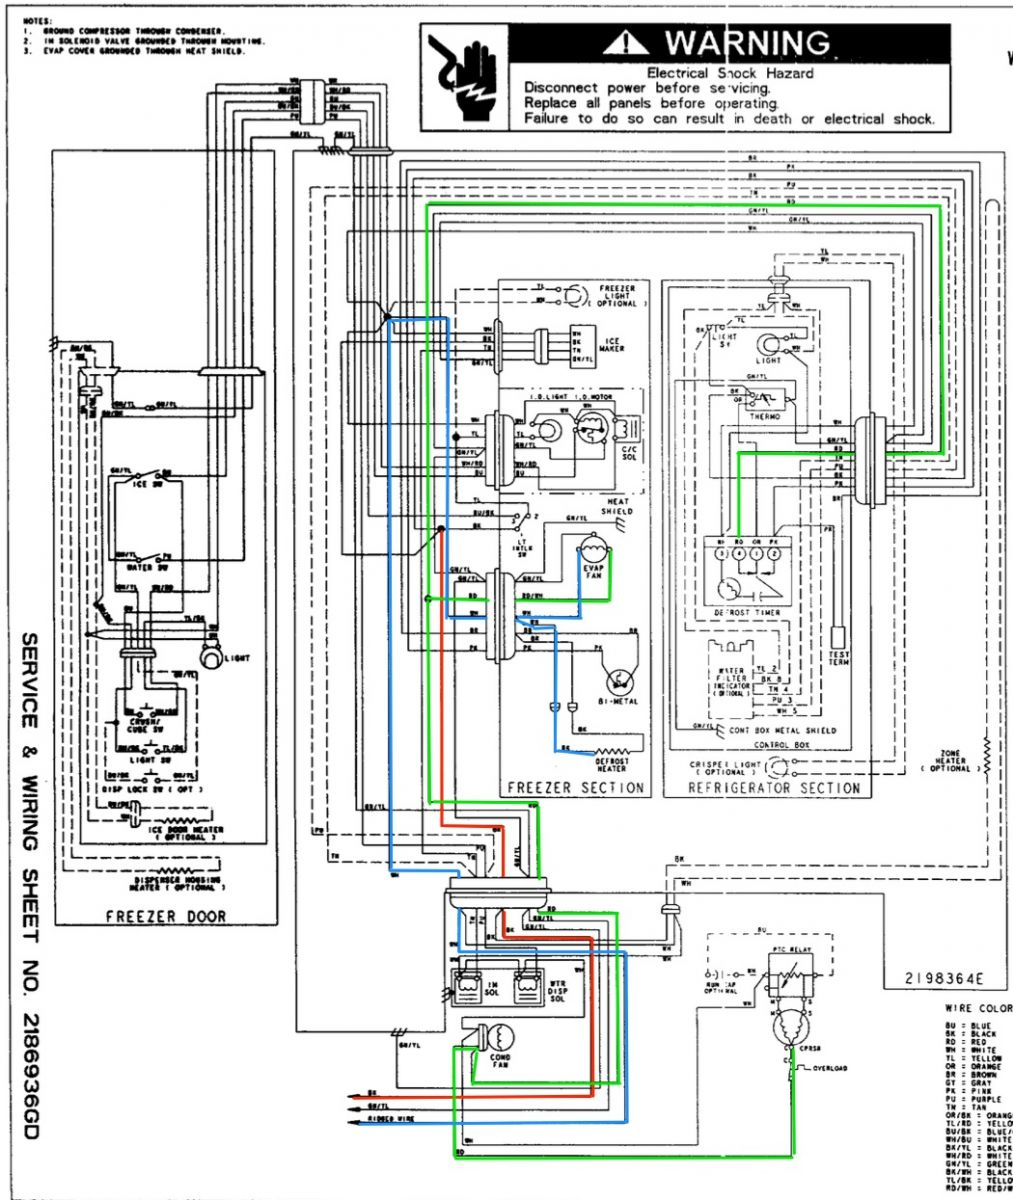 Heating Element Kenmore Ice Maker Wiring Diagram